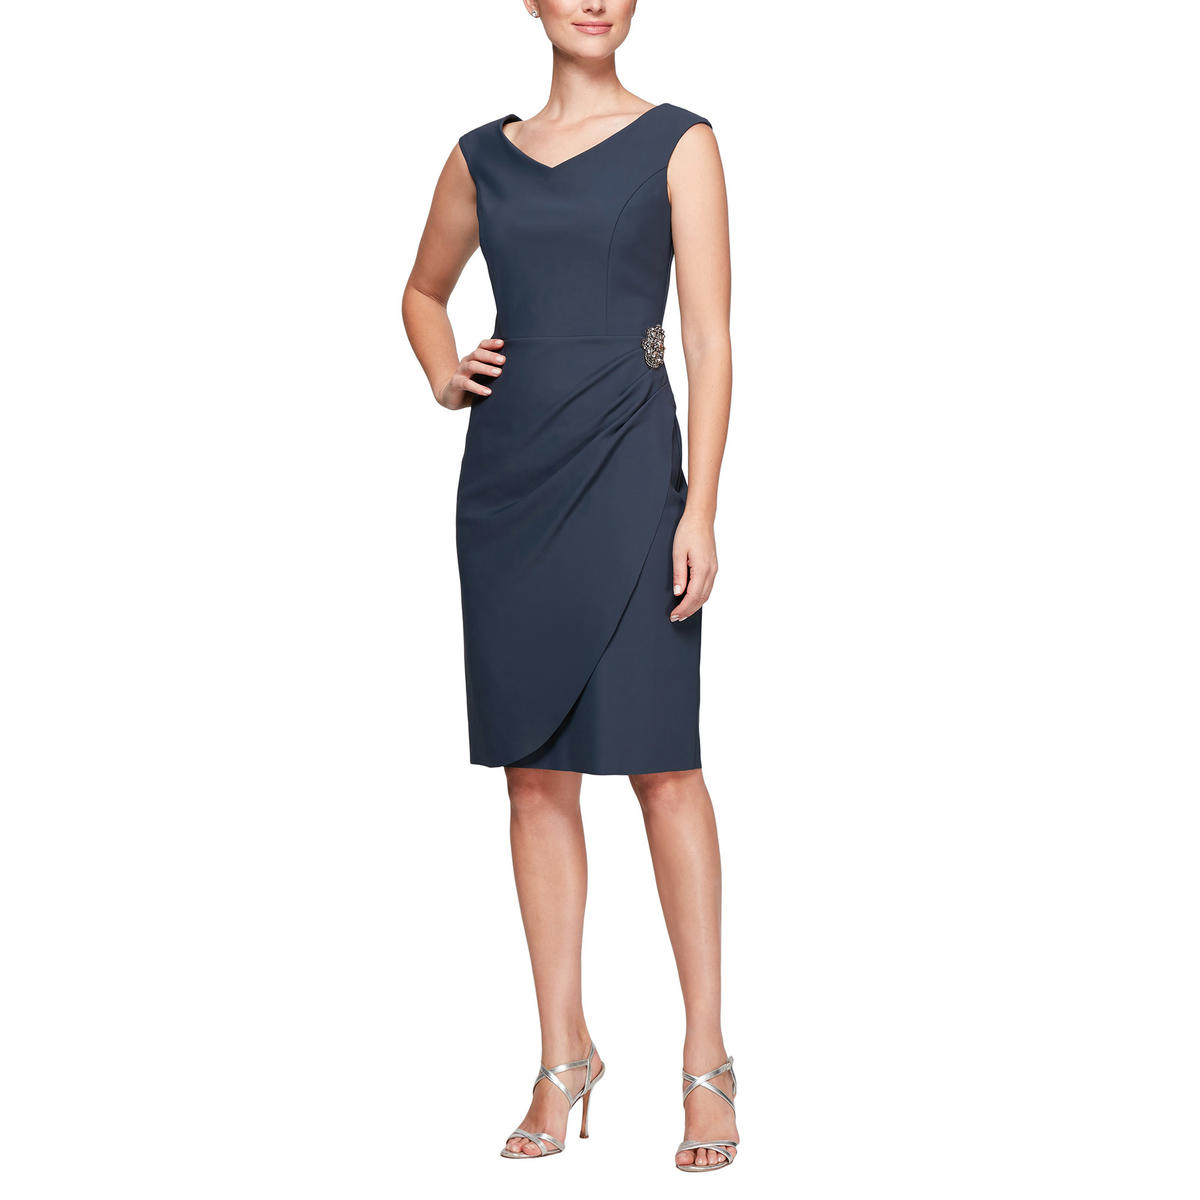 ALEX APPAREL GROUP INC - Sleeveless V-Neck Cocktail Dress